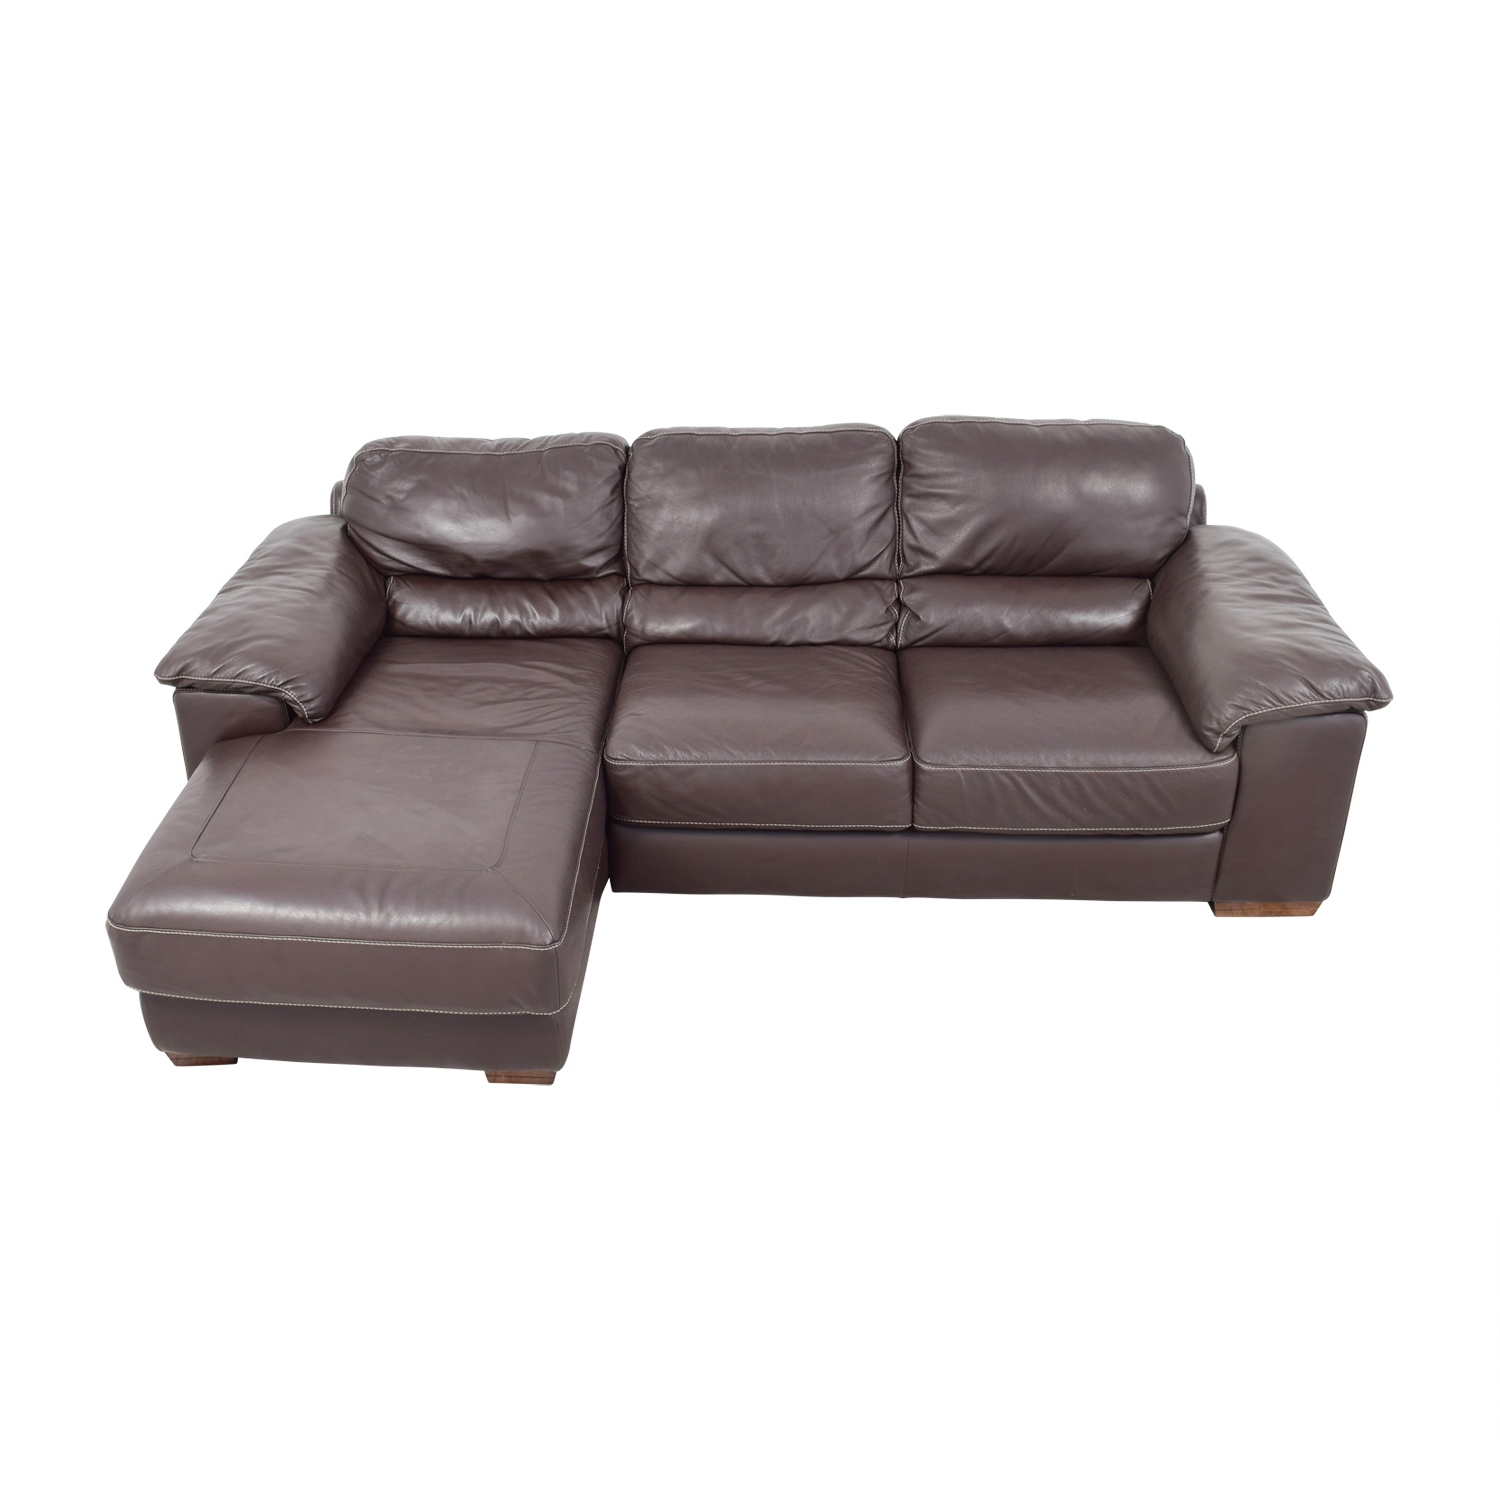 [%54% Off – Raymour & Flanagan Raymour & Flanagan Cindy Crawford With Regard To Famous Leather Chaise Sectionals|Leather Chaise Sectionals Inside 2017 54% Off – Raymour & Flanagan Raymour & Flanagan Cindy Crawford|Widely Used Leather Chaise Sectionals For 54% Off – Raymour & Flanagan Raymour & Flanagan Cindy Crawford|2018 54% Off – Raymour & Flanagan Raymour & Flanagan Cindy Crawford Inside Leather Chaise Sectionals%] (View 8 of 15)